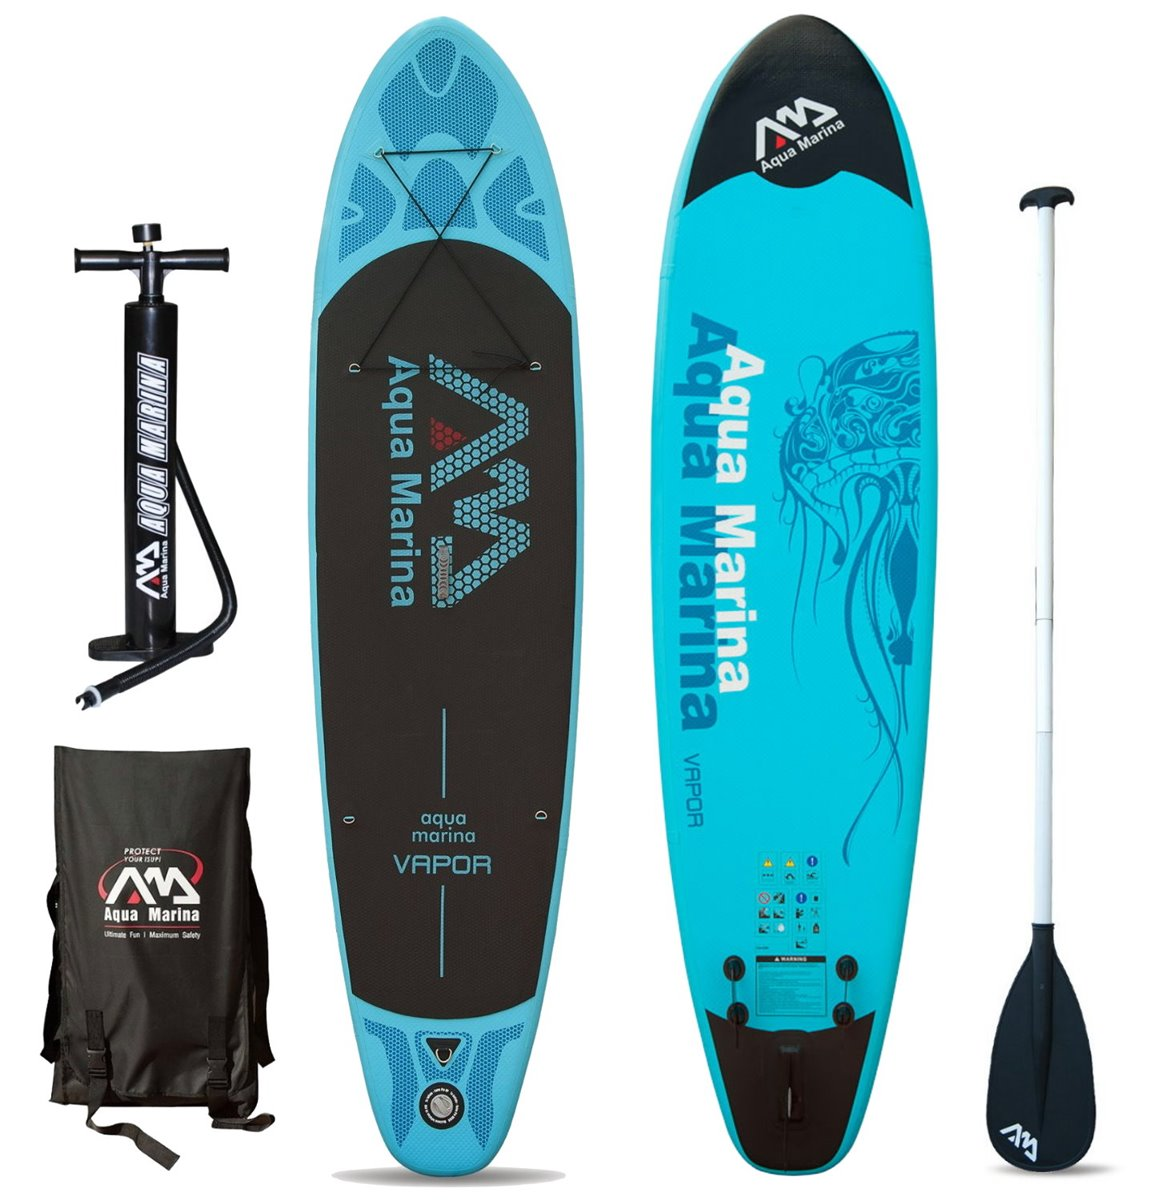 VAPOR INFLATABLE SUP BOARD PACKAGE W/PADDLE AQUA MARINA 2017